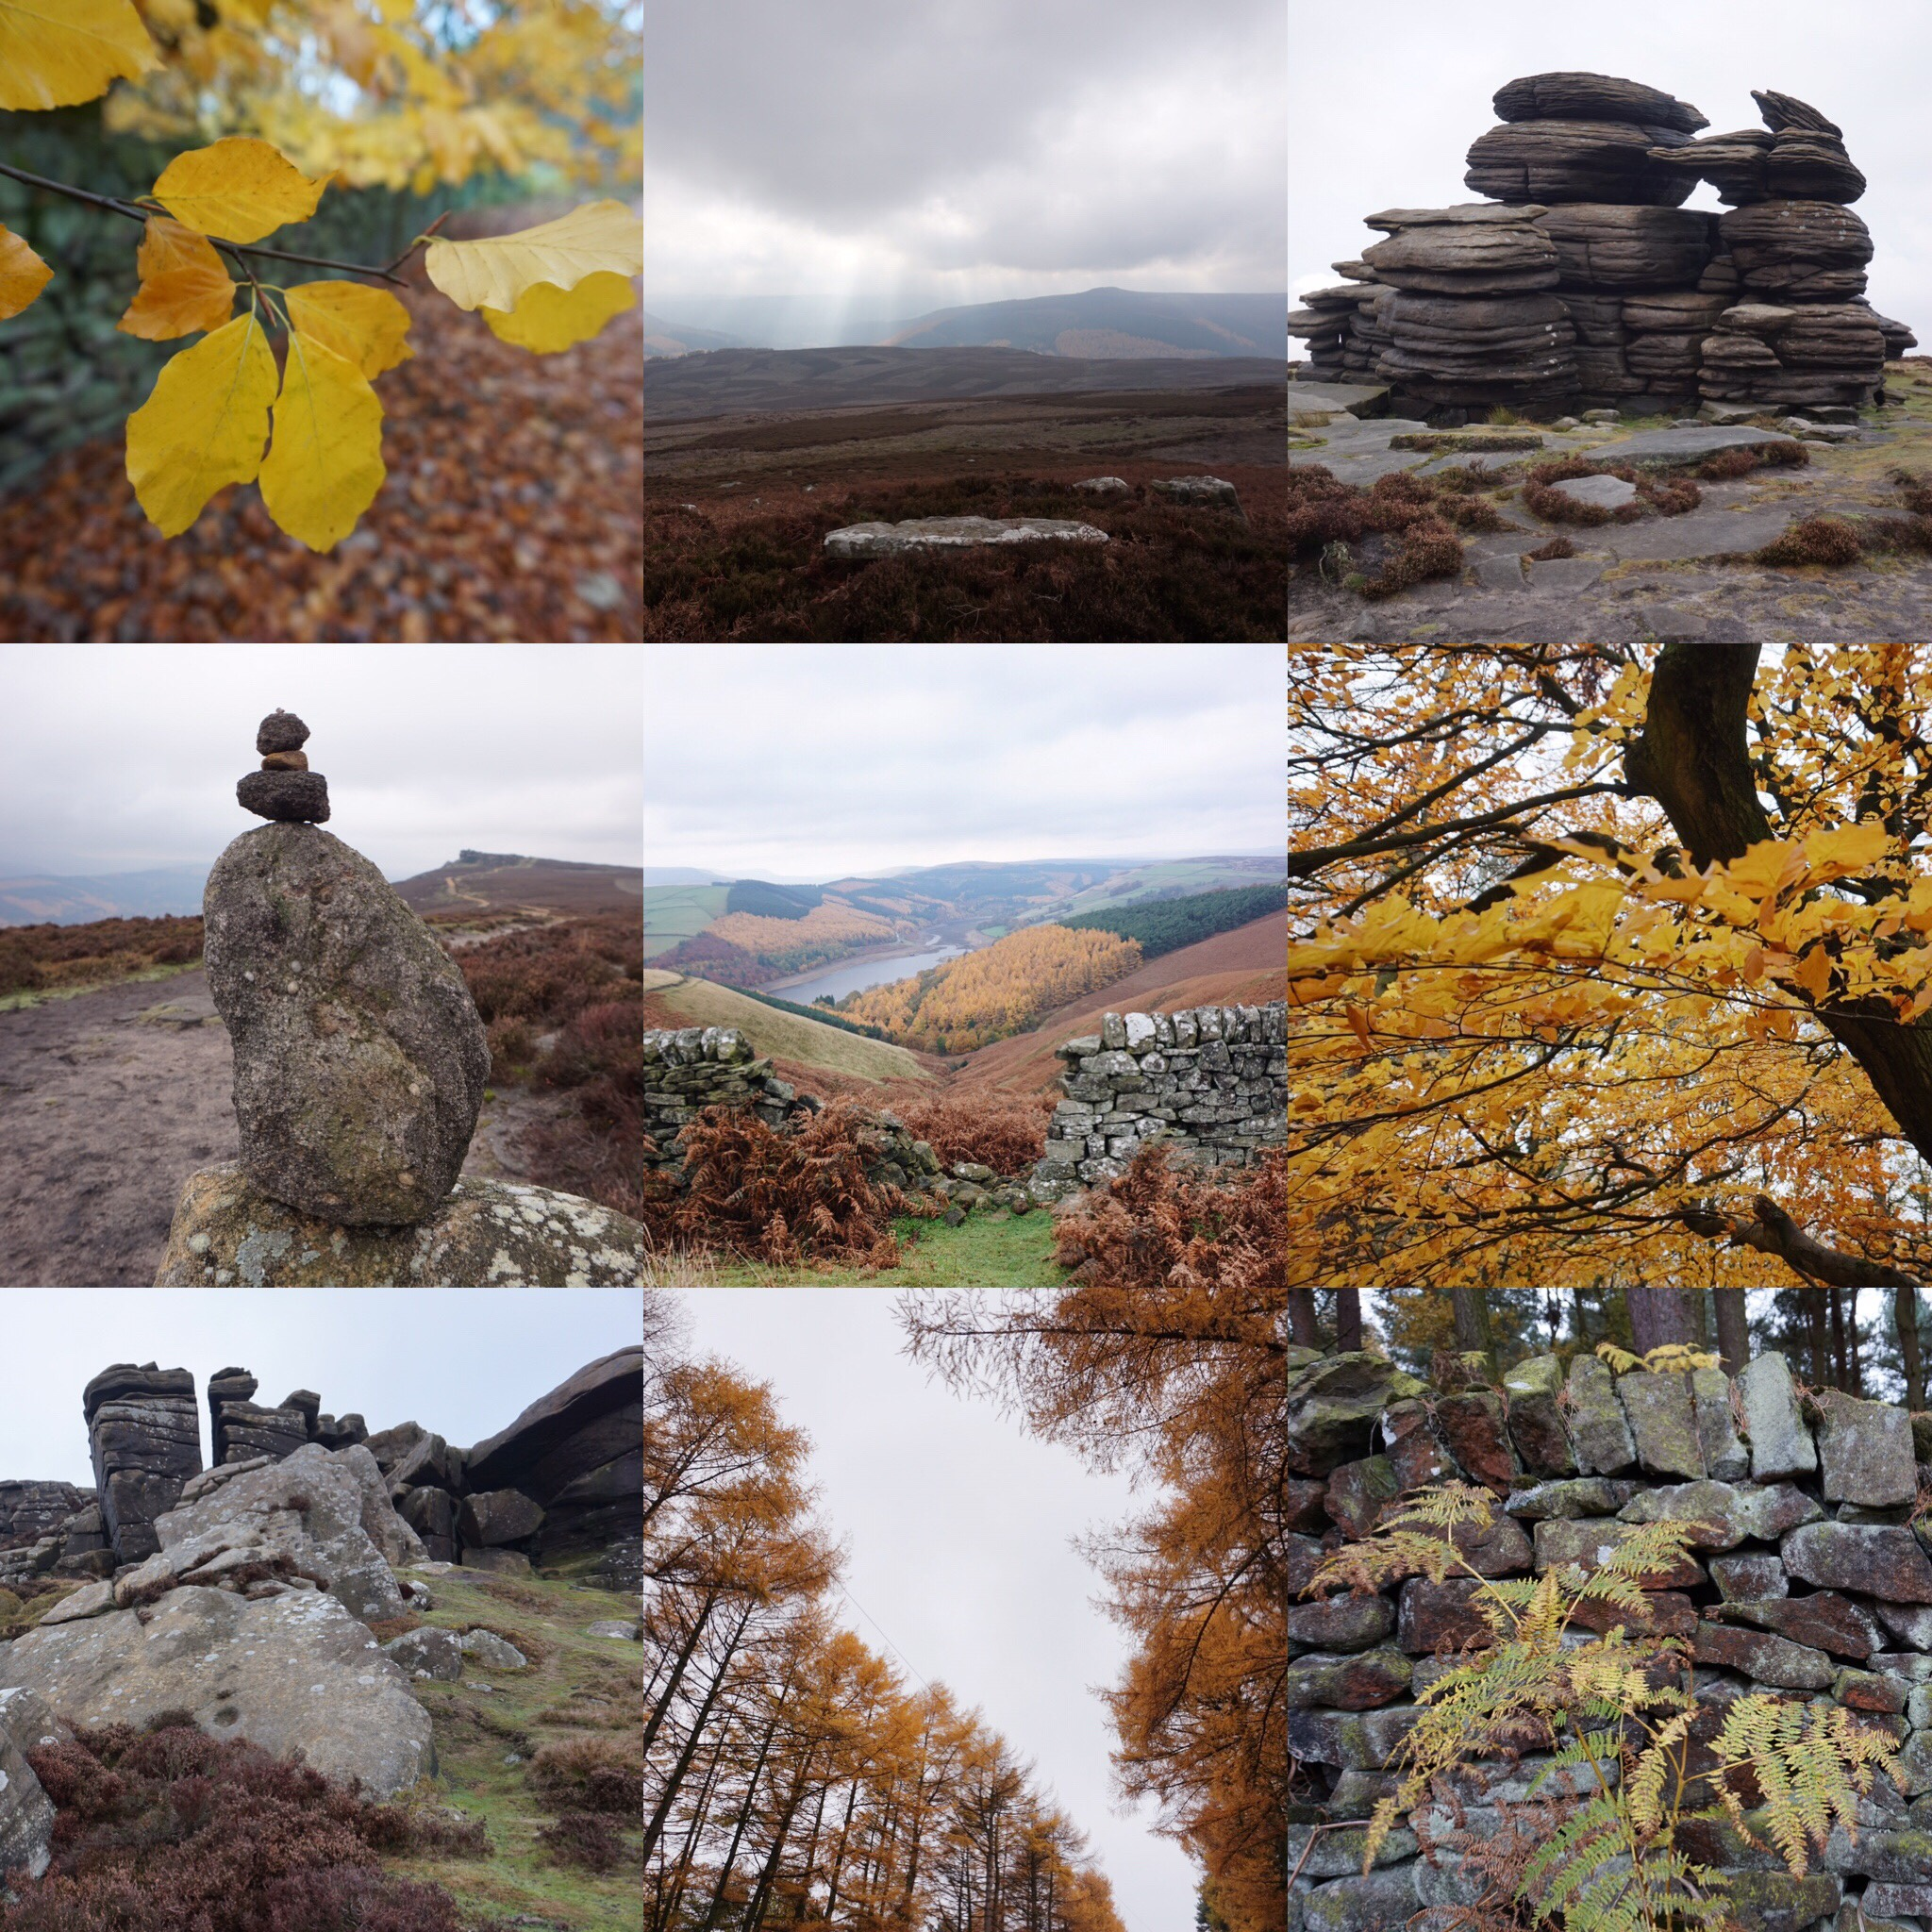 Autumn at the Upper Derwent Valley towards Derwent Edge